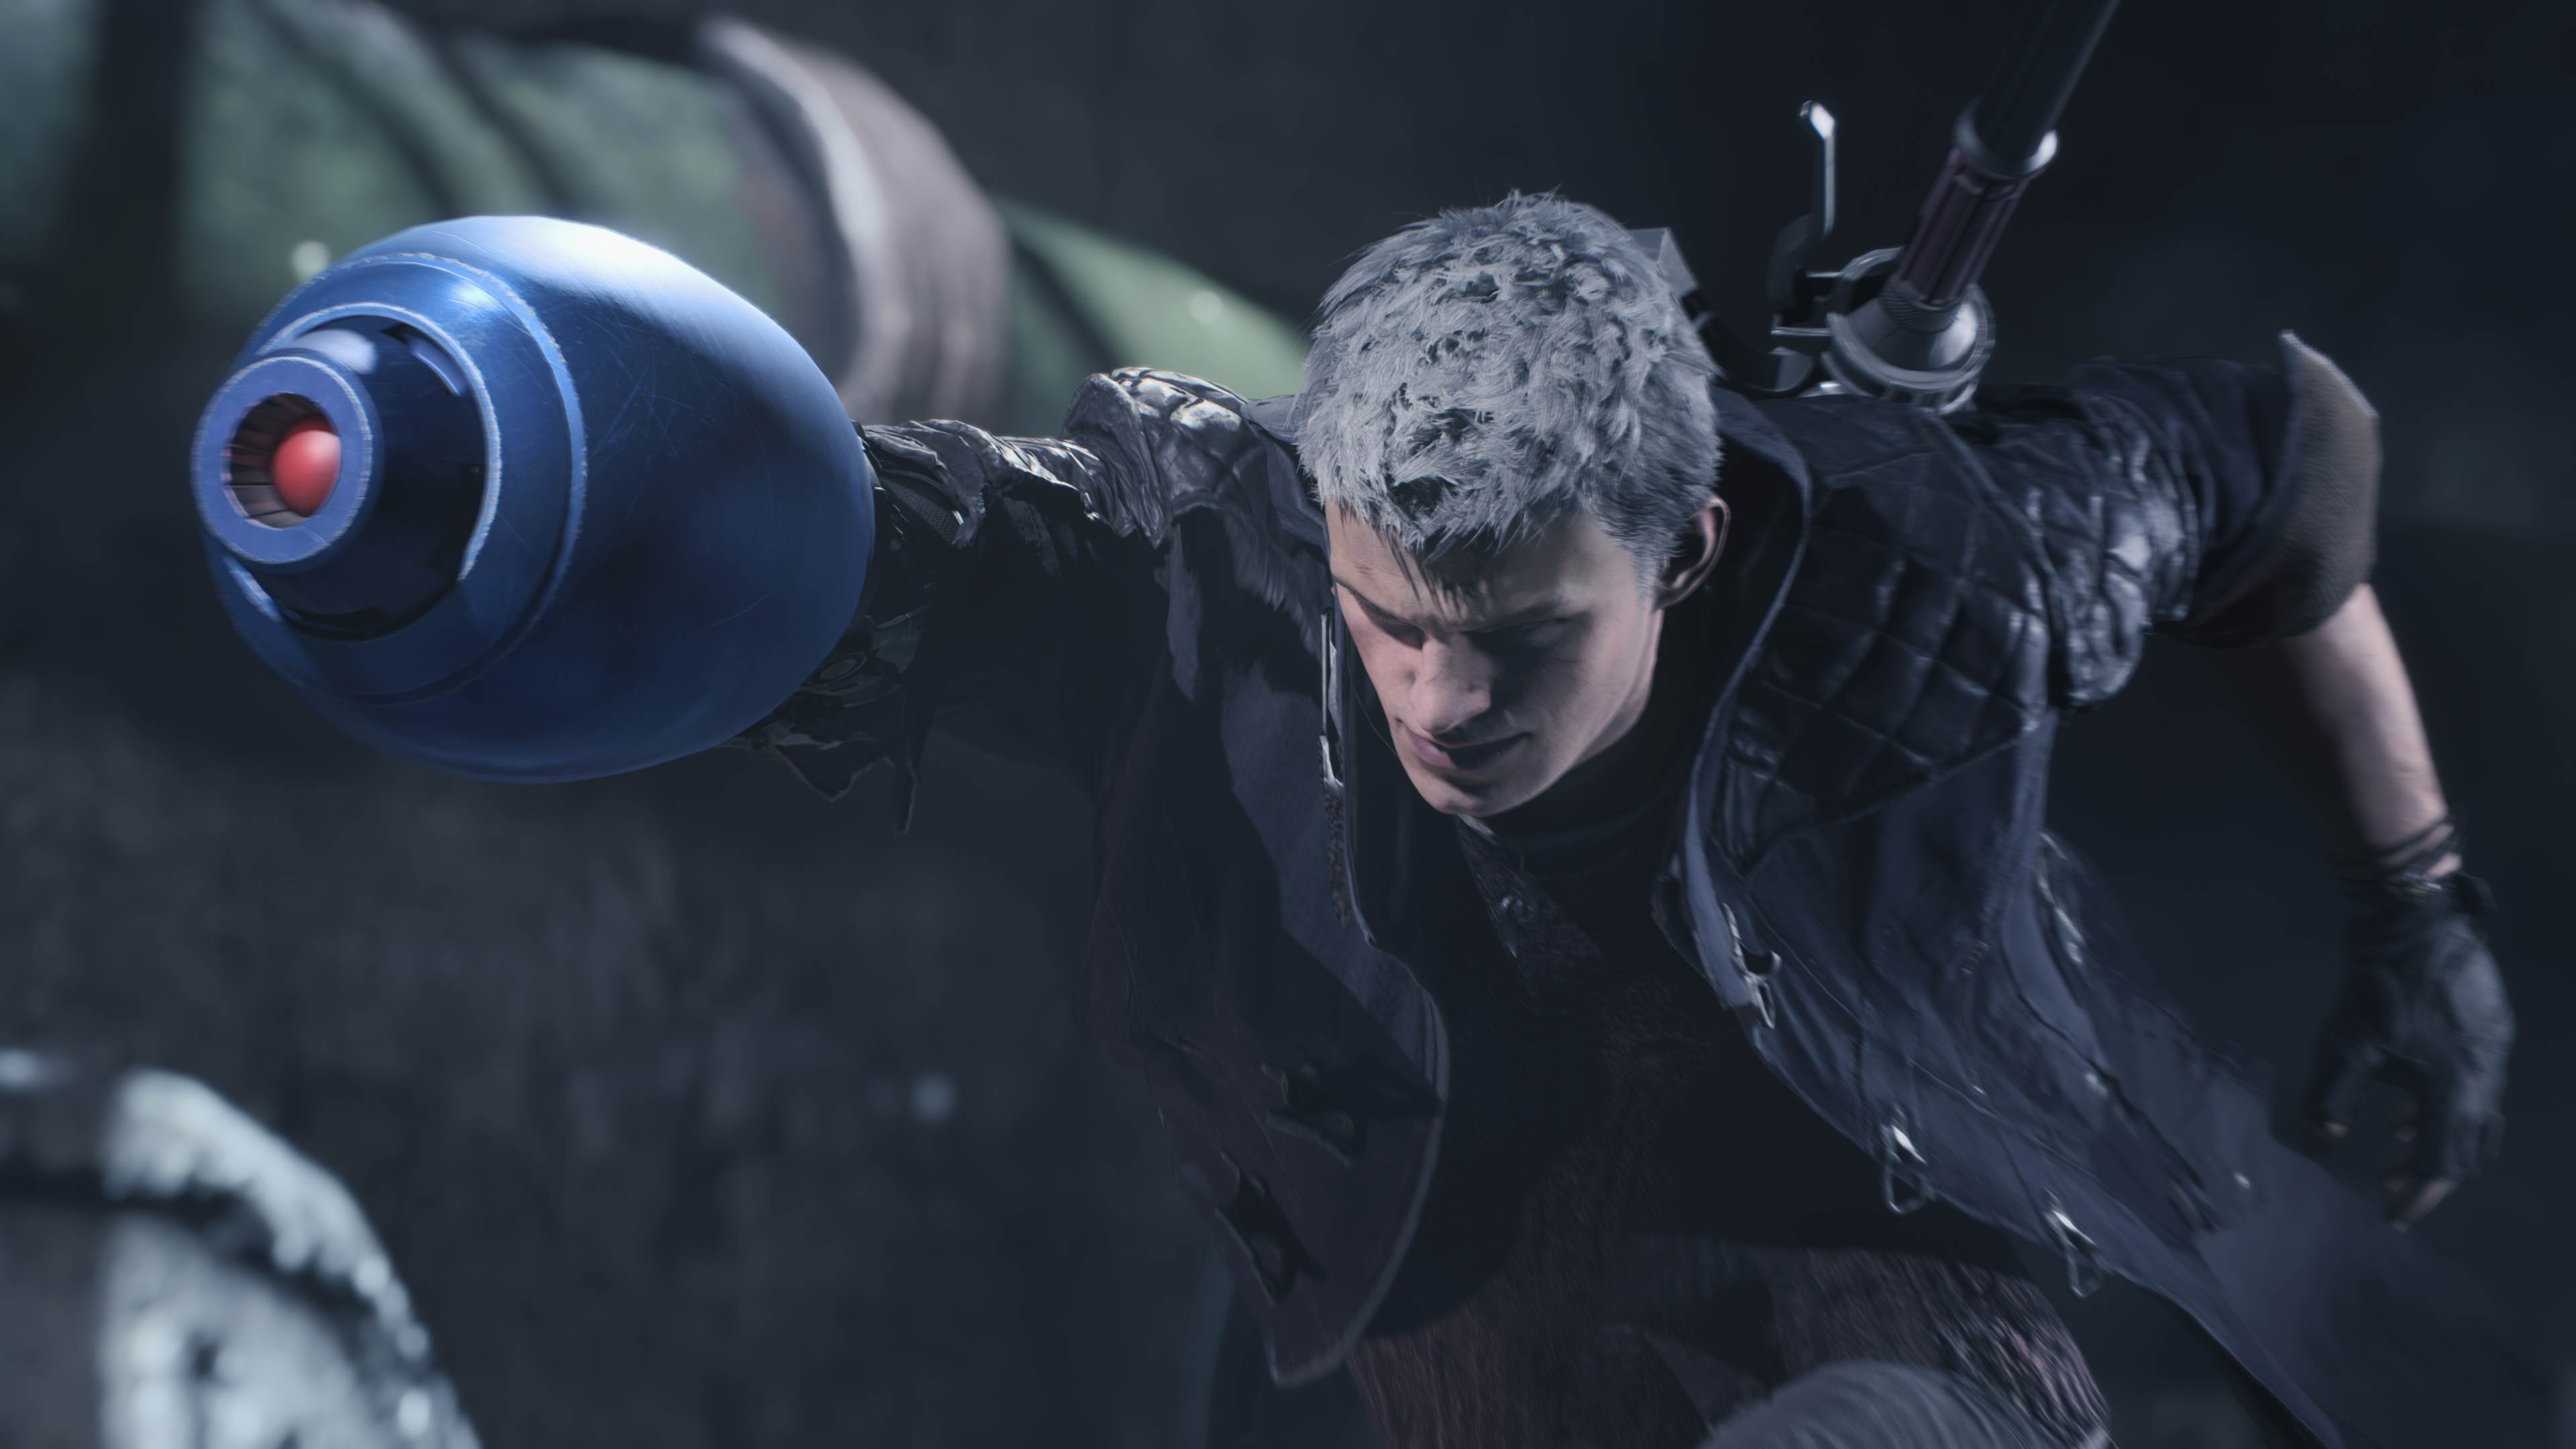 1024x768 Nero Devil May Cry 5 2019 4k 1024x768 Resolution Hd